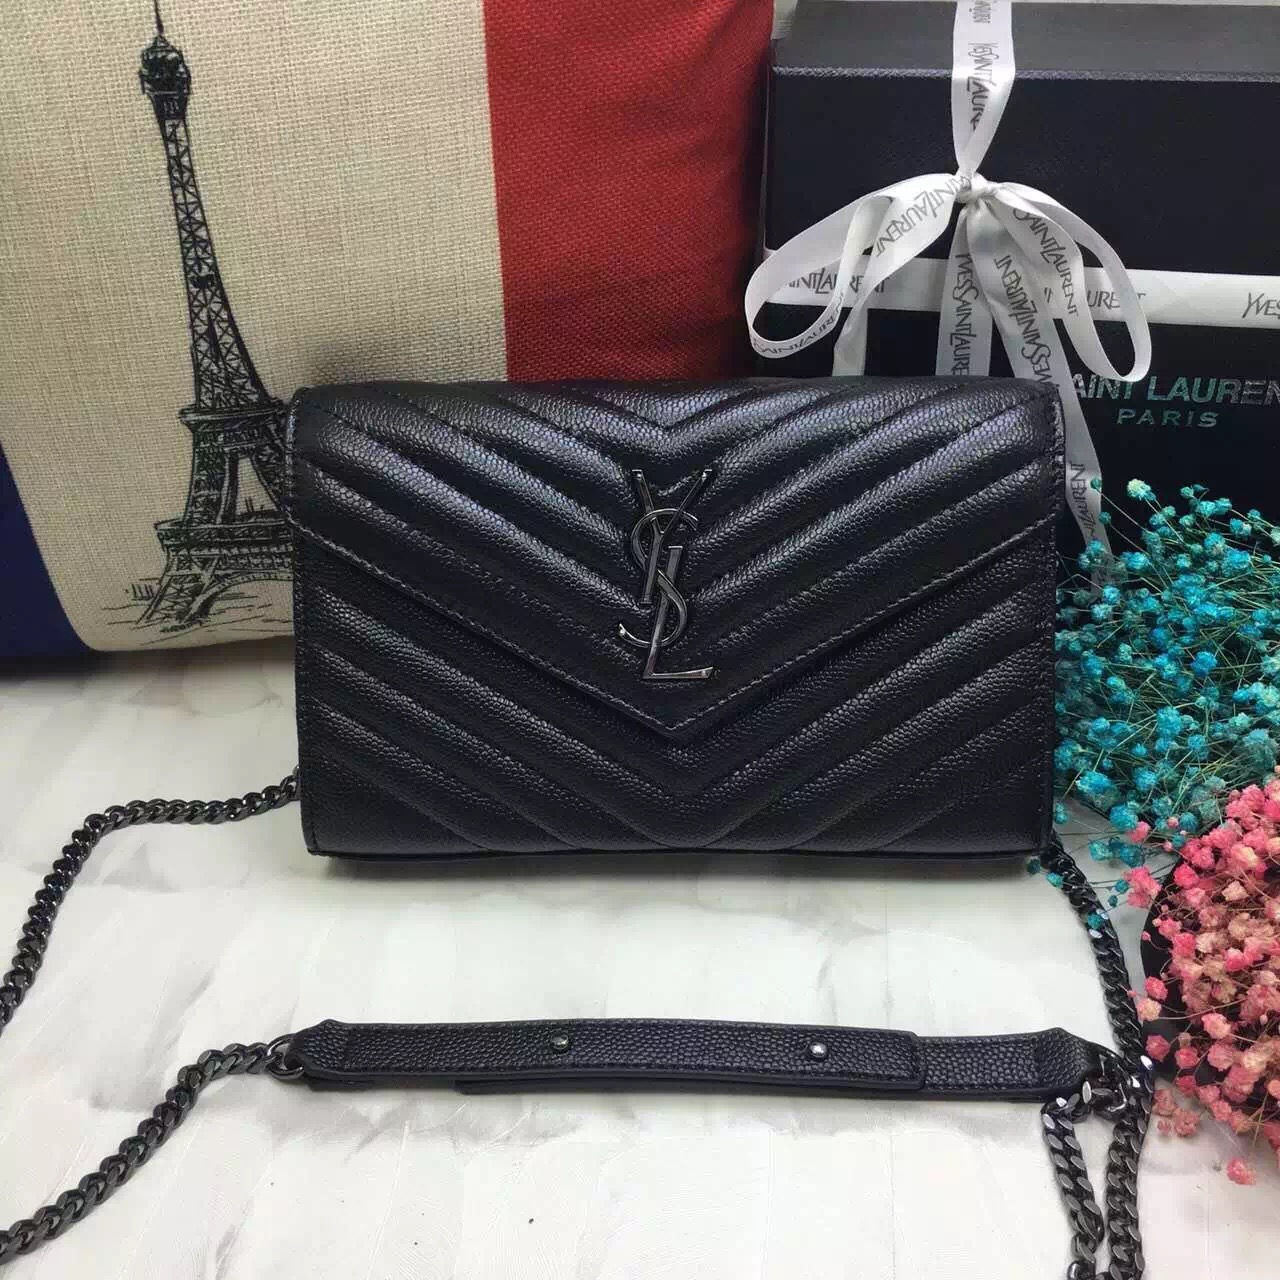 YSL Envelope Bag Caviar Leather Black Gunmetal Chain 23cm